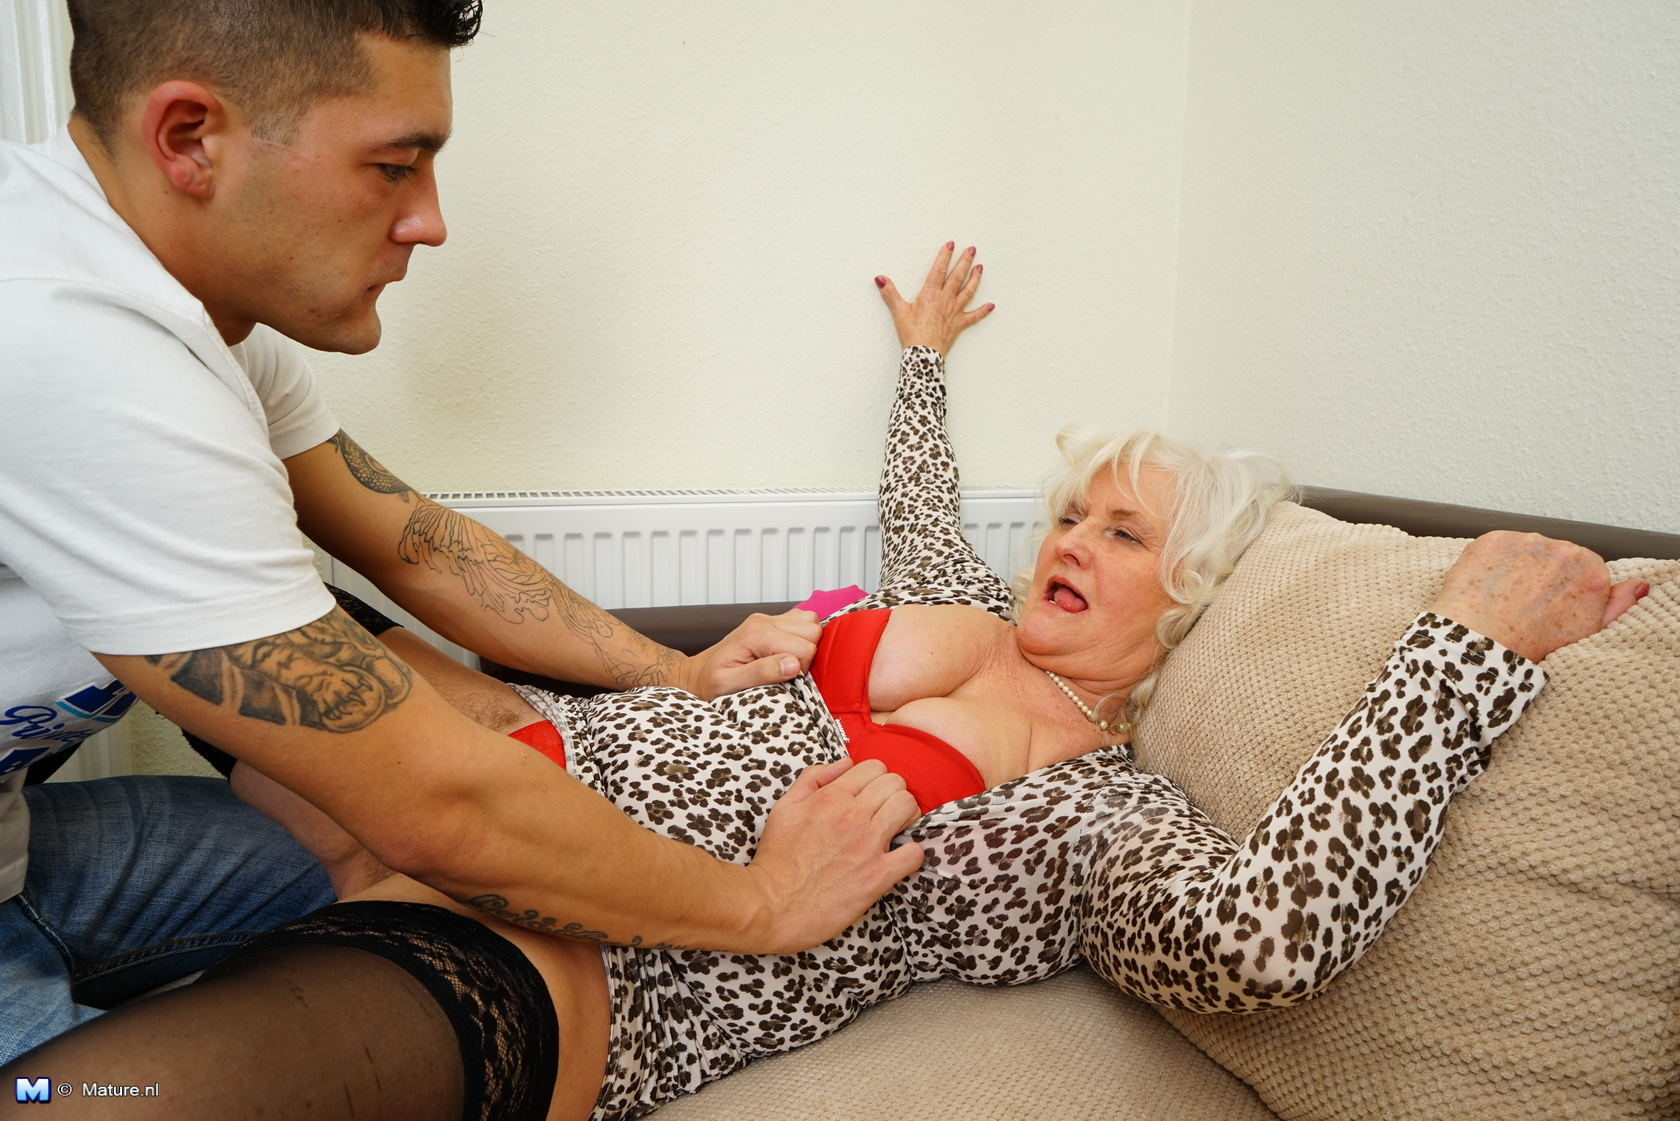 Milf fucks with boy 10 yo younger than her